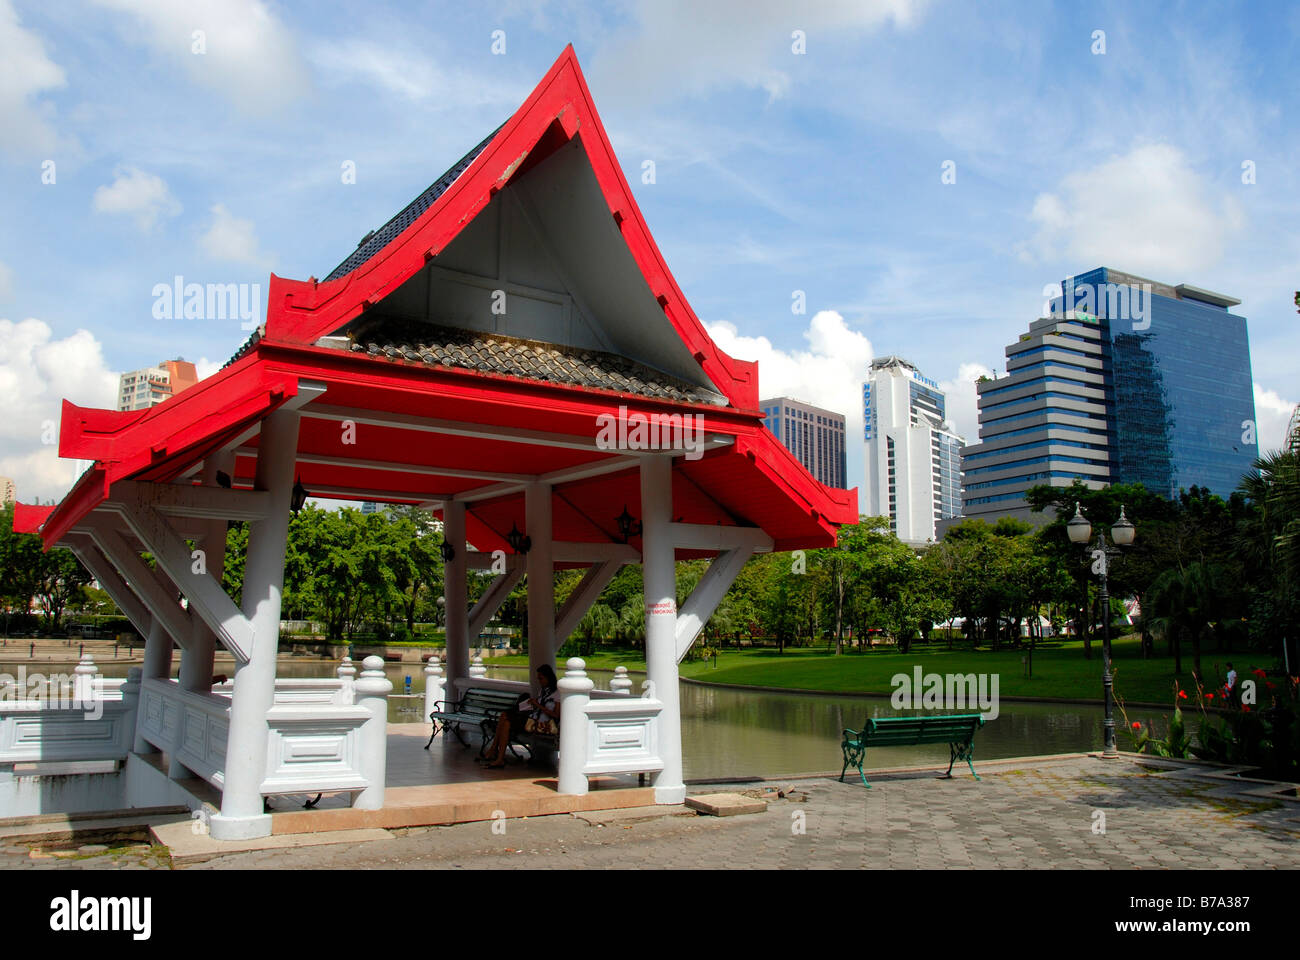 Small temple with a red roof in front of modern multistory buildings, Queens Park, Bangkok, Thailand, Southeast - Stock Image